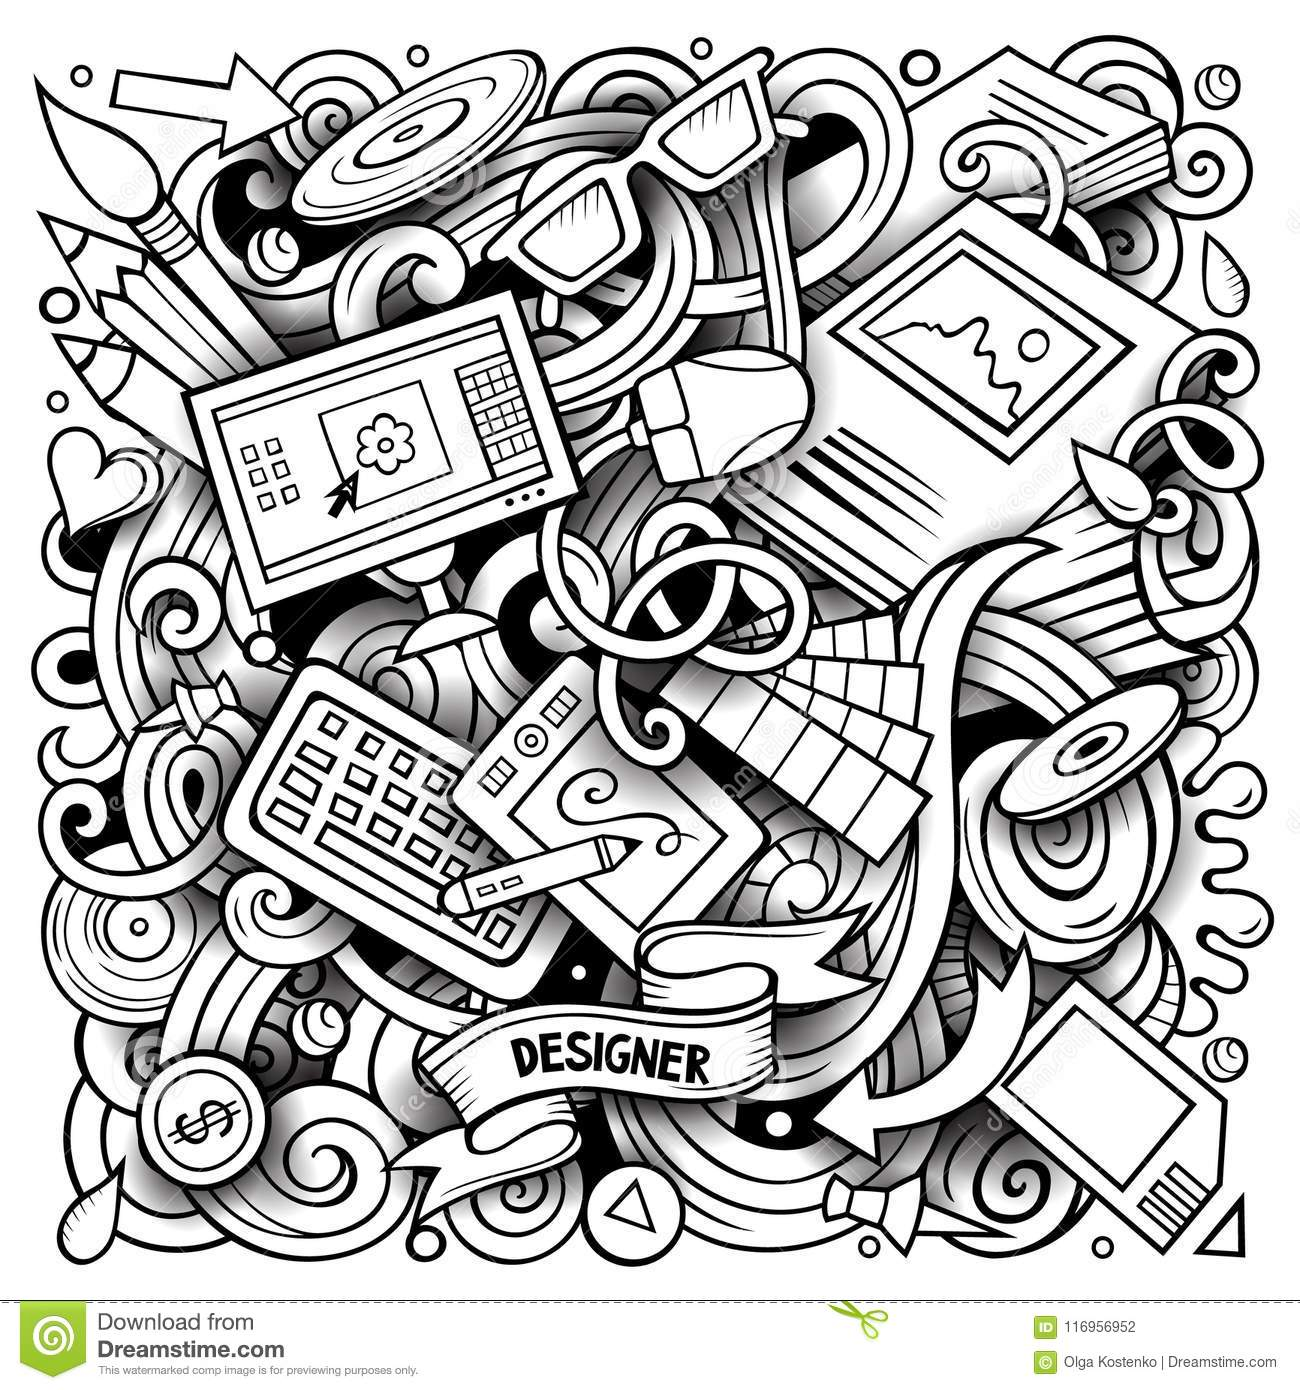 images?q=tbn:ANd9GcQh_l3eQ5xwiPy07kGEXjmjgmBKBRB7H2mRxCGhv1tFWg5c_mWT Cool Line Art Vector Design @bookmarkpages.info